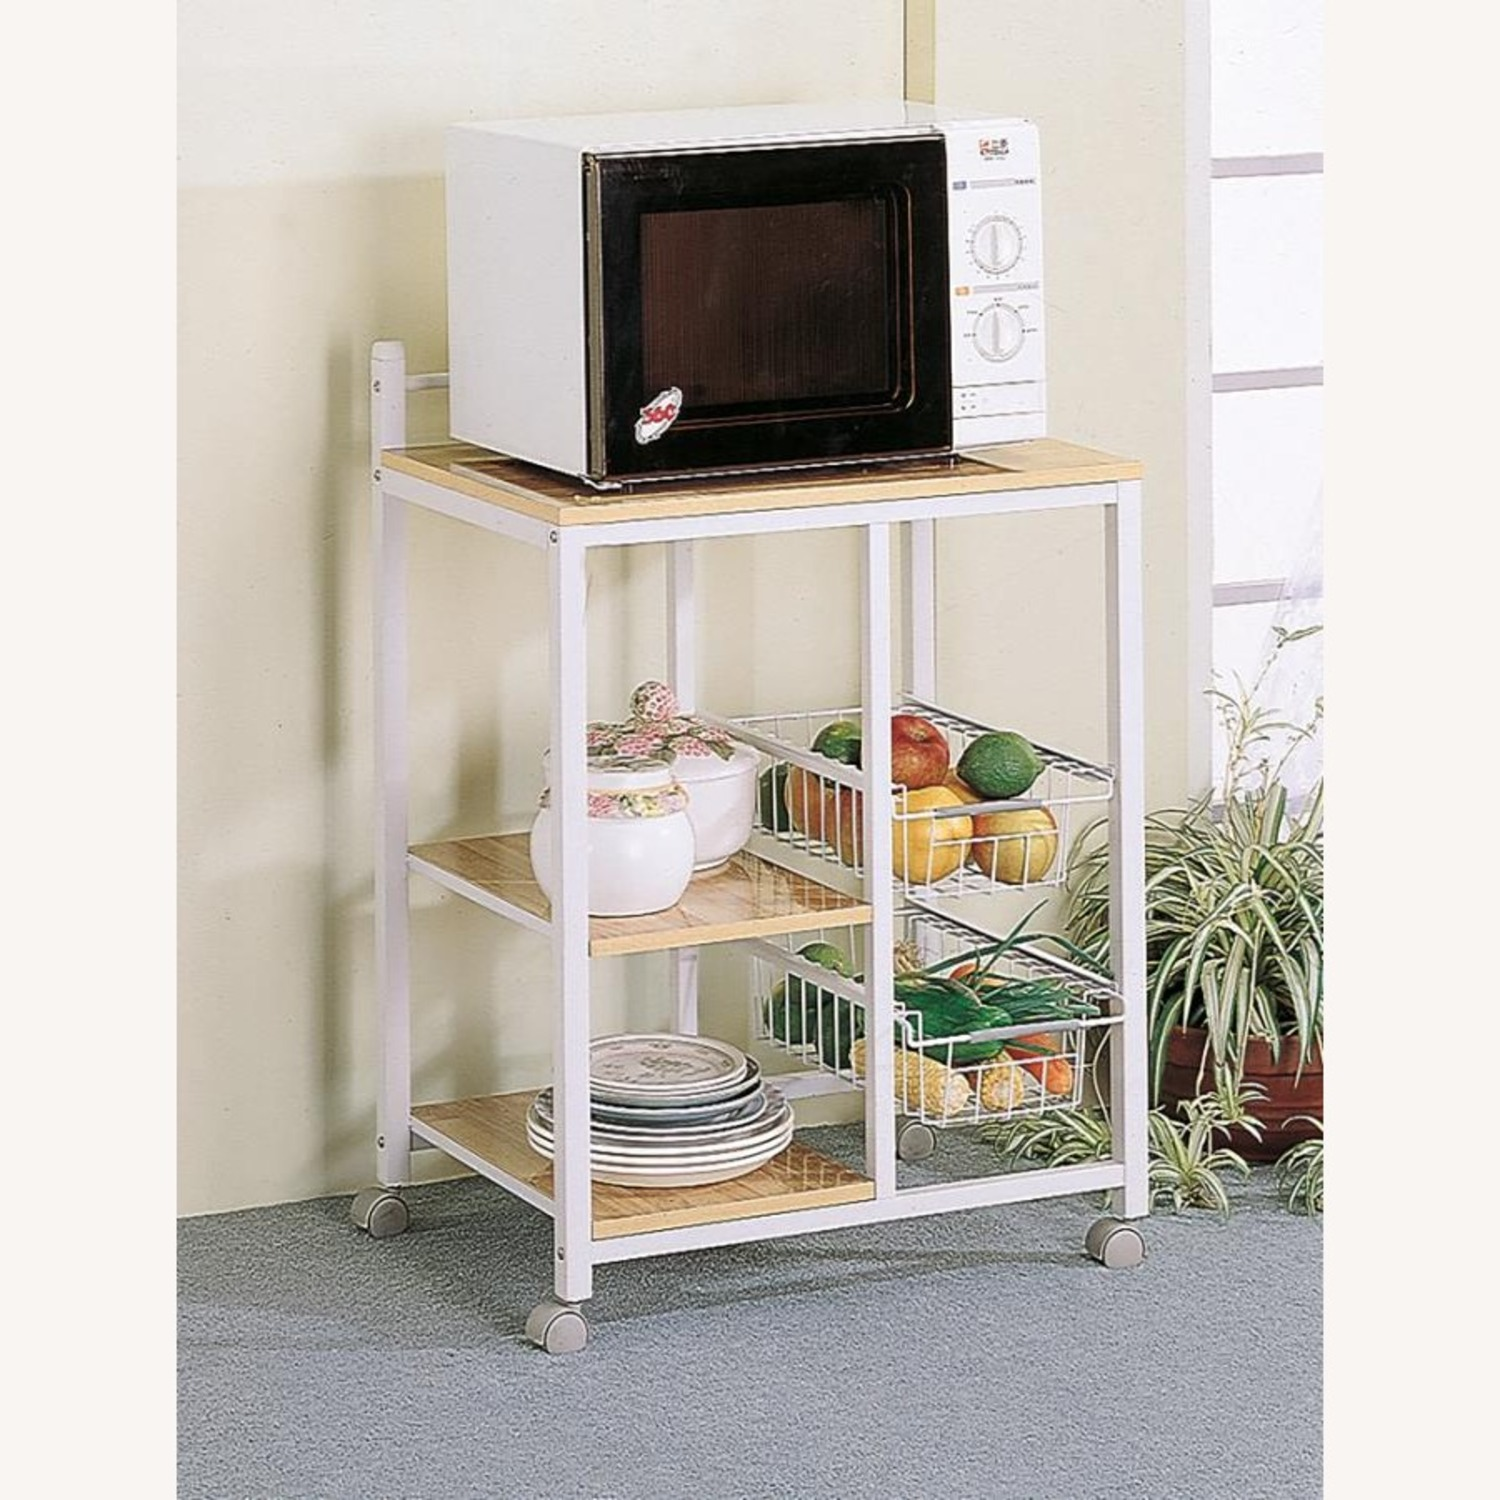 Kitchen Cart In Natural Brown W/ 2 Open Shelves - image-0